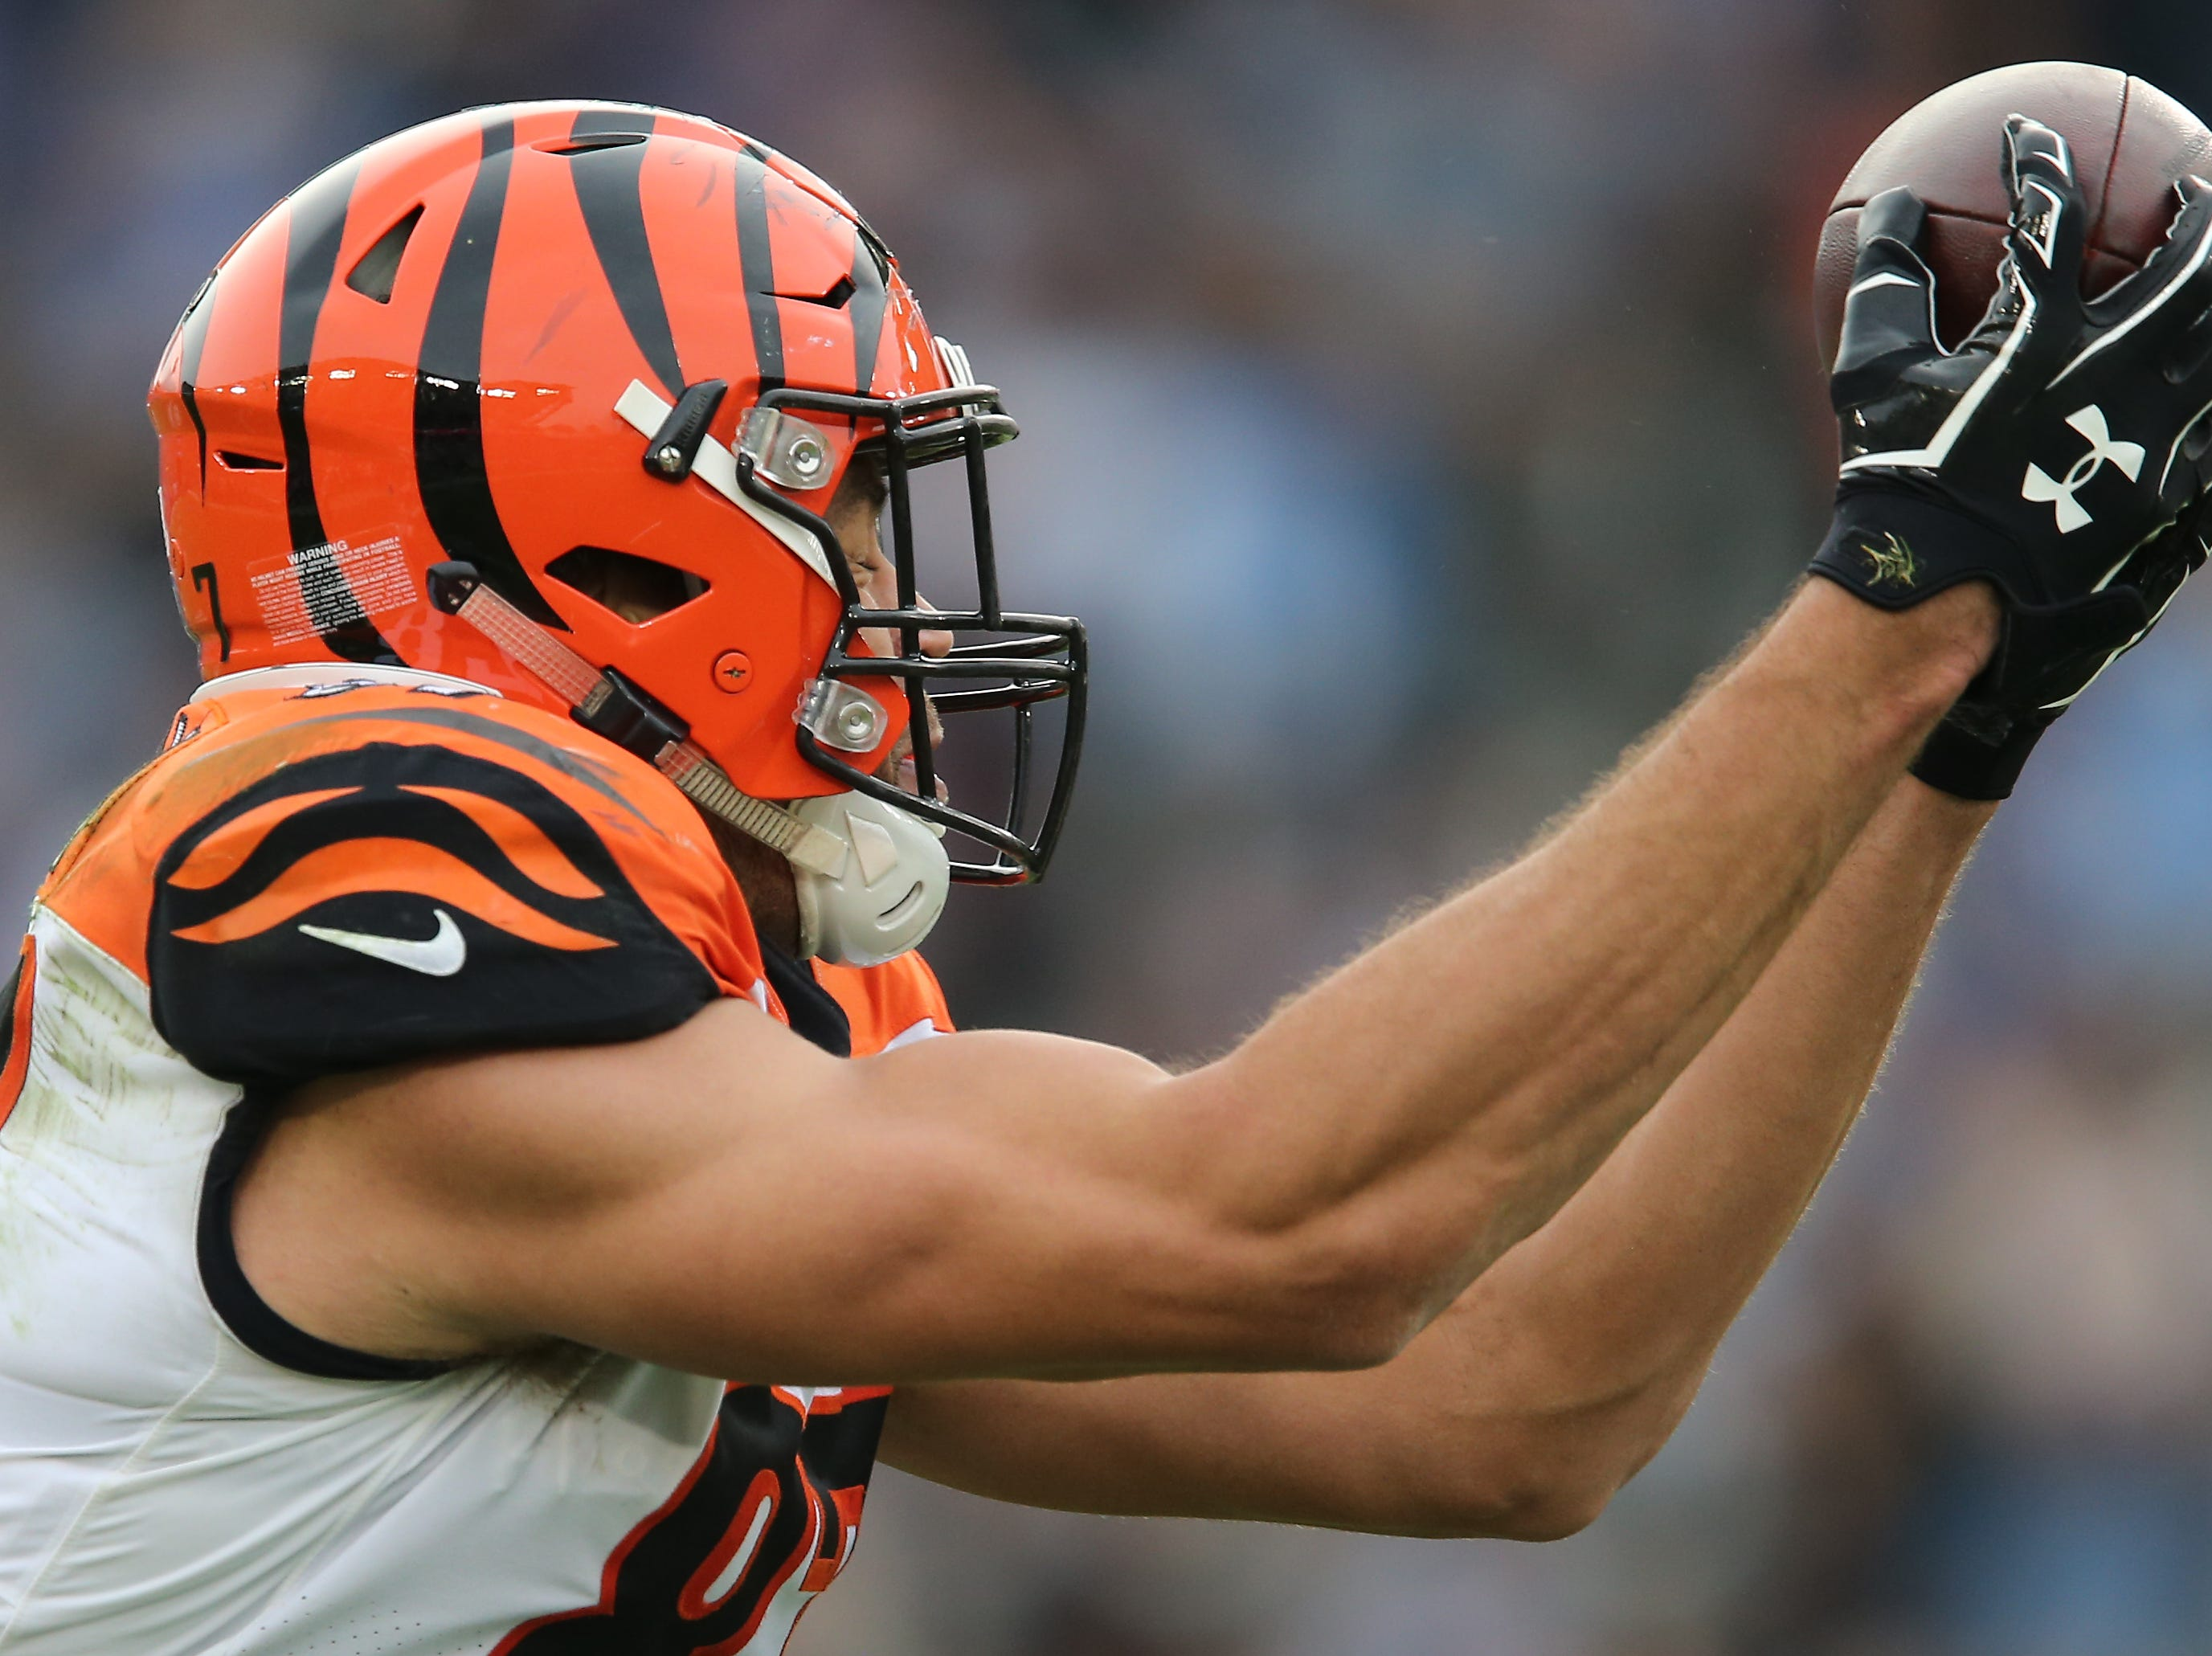 Cincinnati Bengals tight end C.J. Uzomah (87) catches a pass in the third quarter of a Week 14 NFL football game against the Los Angeles Chargers, Sunday, Dec. 9, 2018, at StubHub Center in Carson, California.